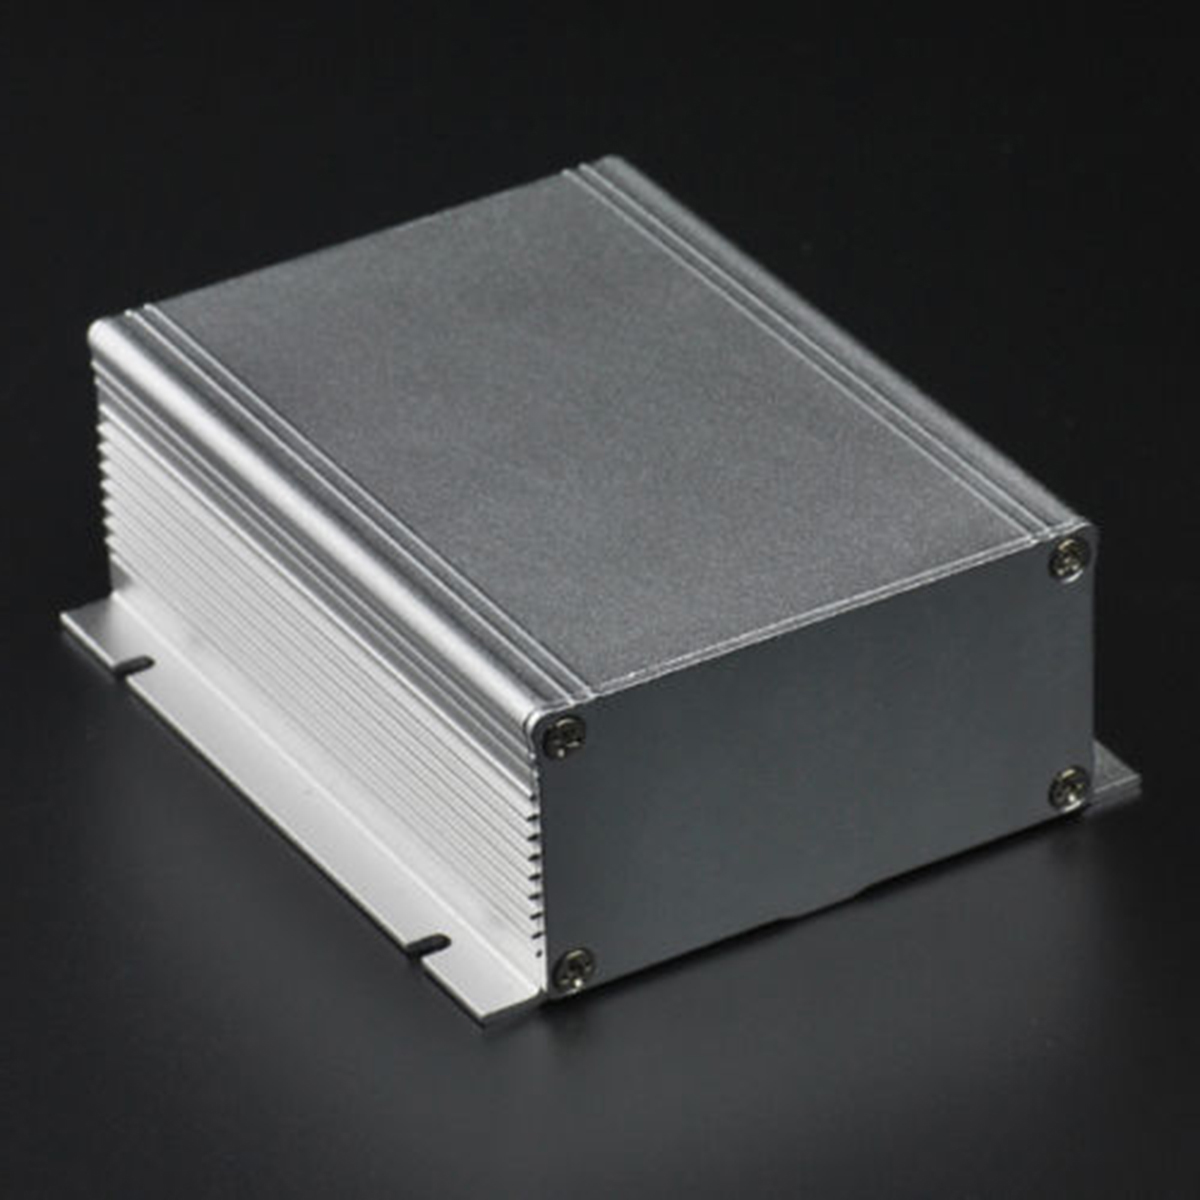 1pc Aluminum Extruded Enclosure Box DIY PCB Electronic Project Instrument Case 88*39*100mm extruded aluminum enclosure case electronic project diy pcb instrument box for holding circuit board 100x100x50mm